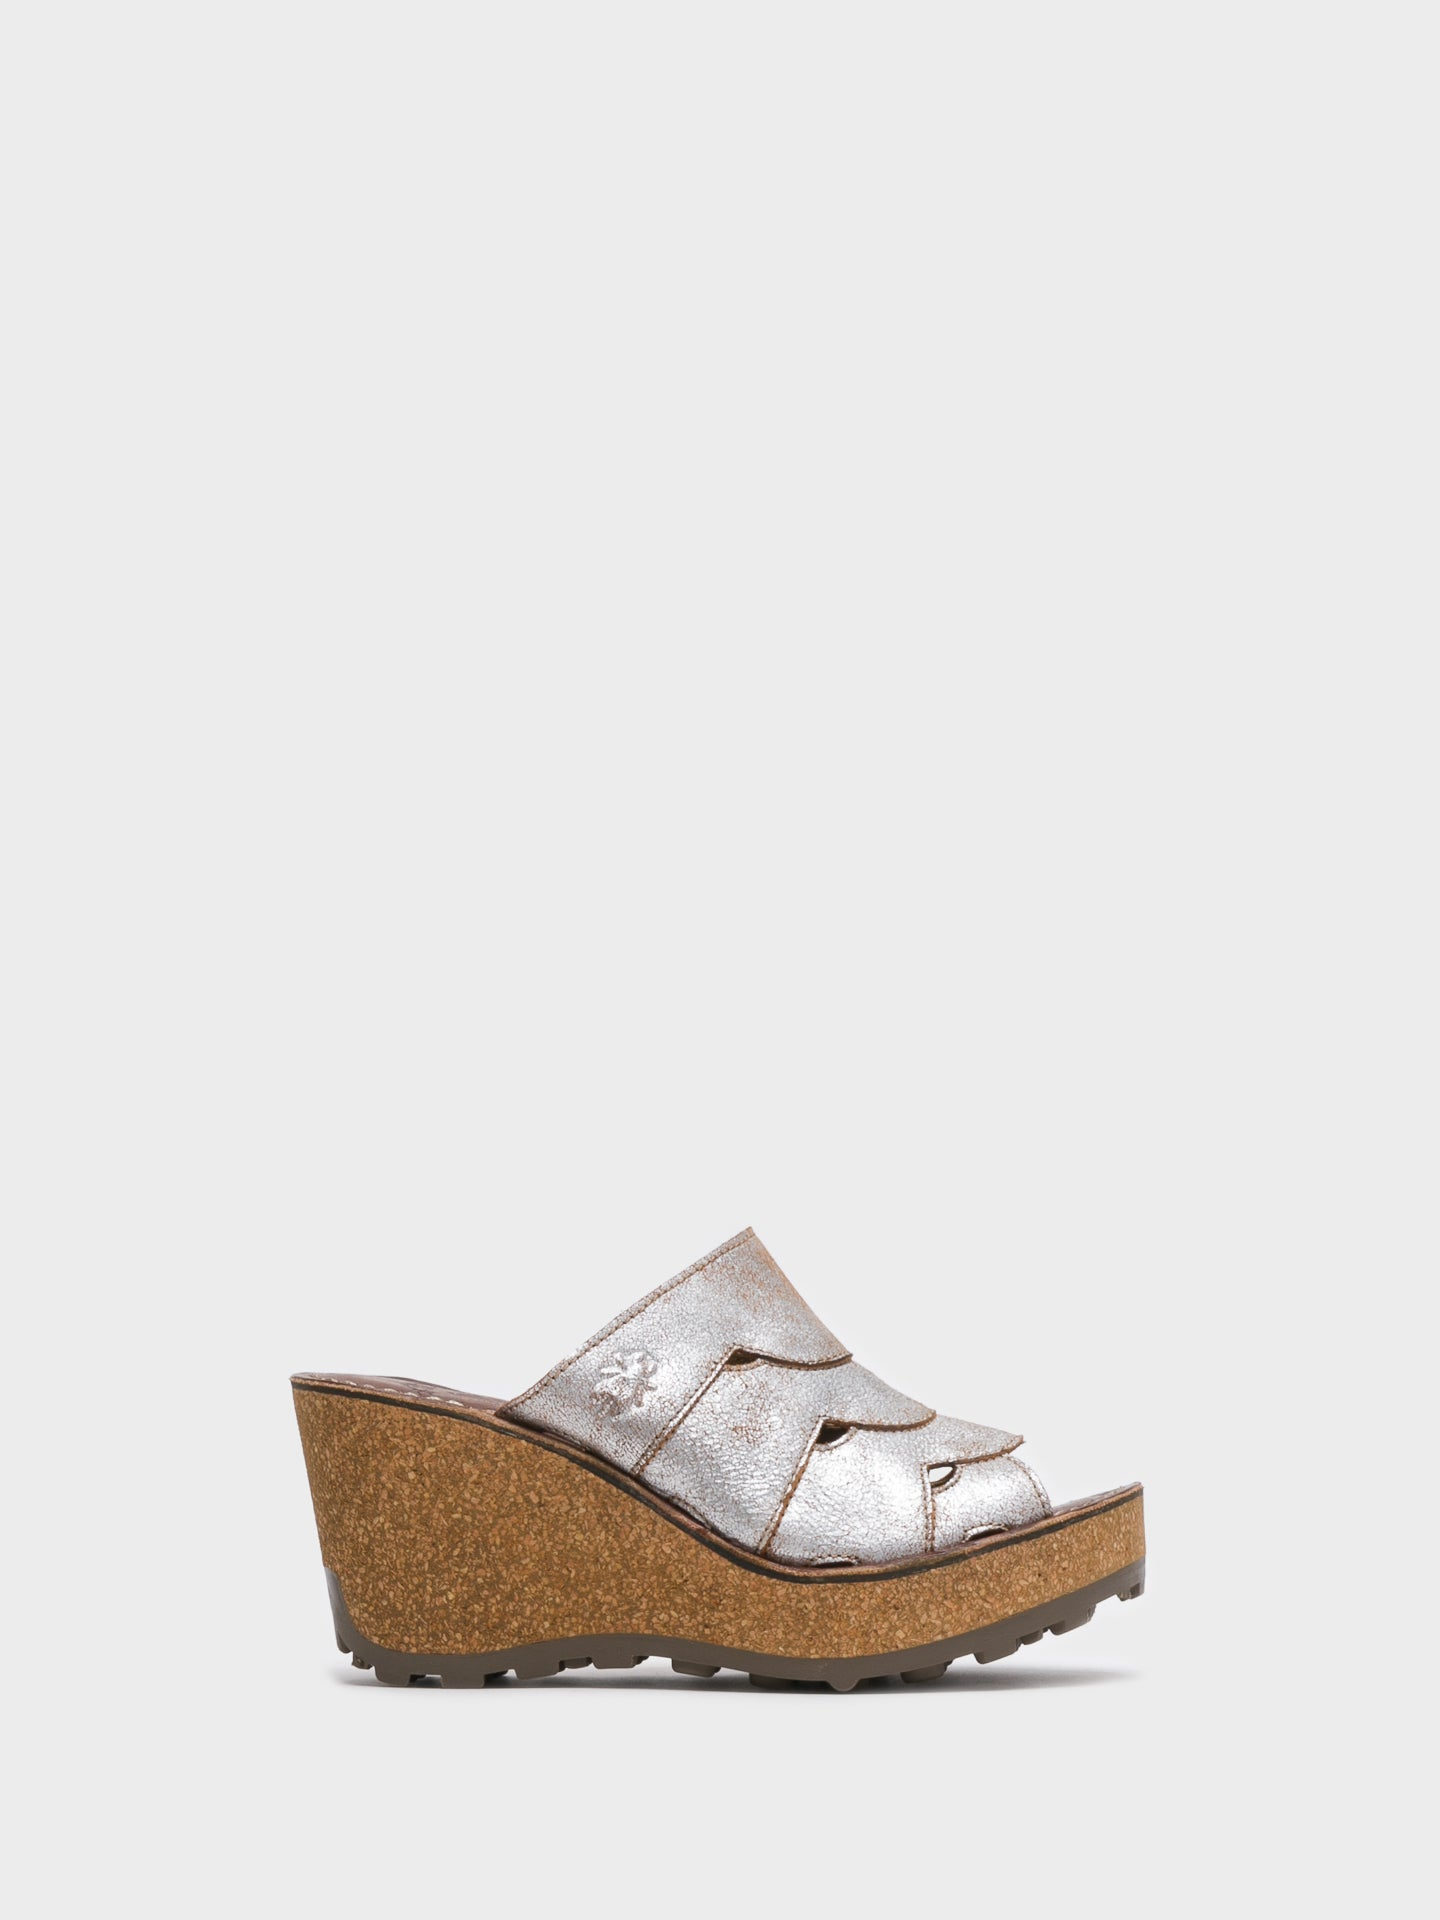 Fly London Mules mit Keilabsatz in Beige